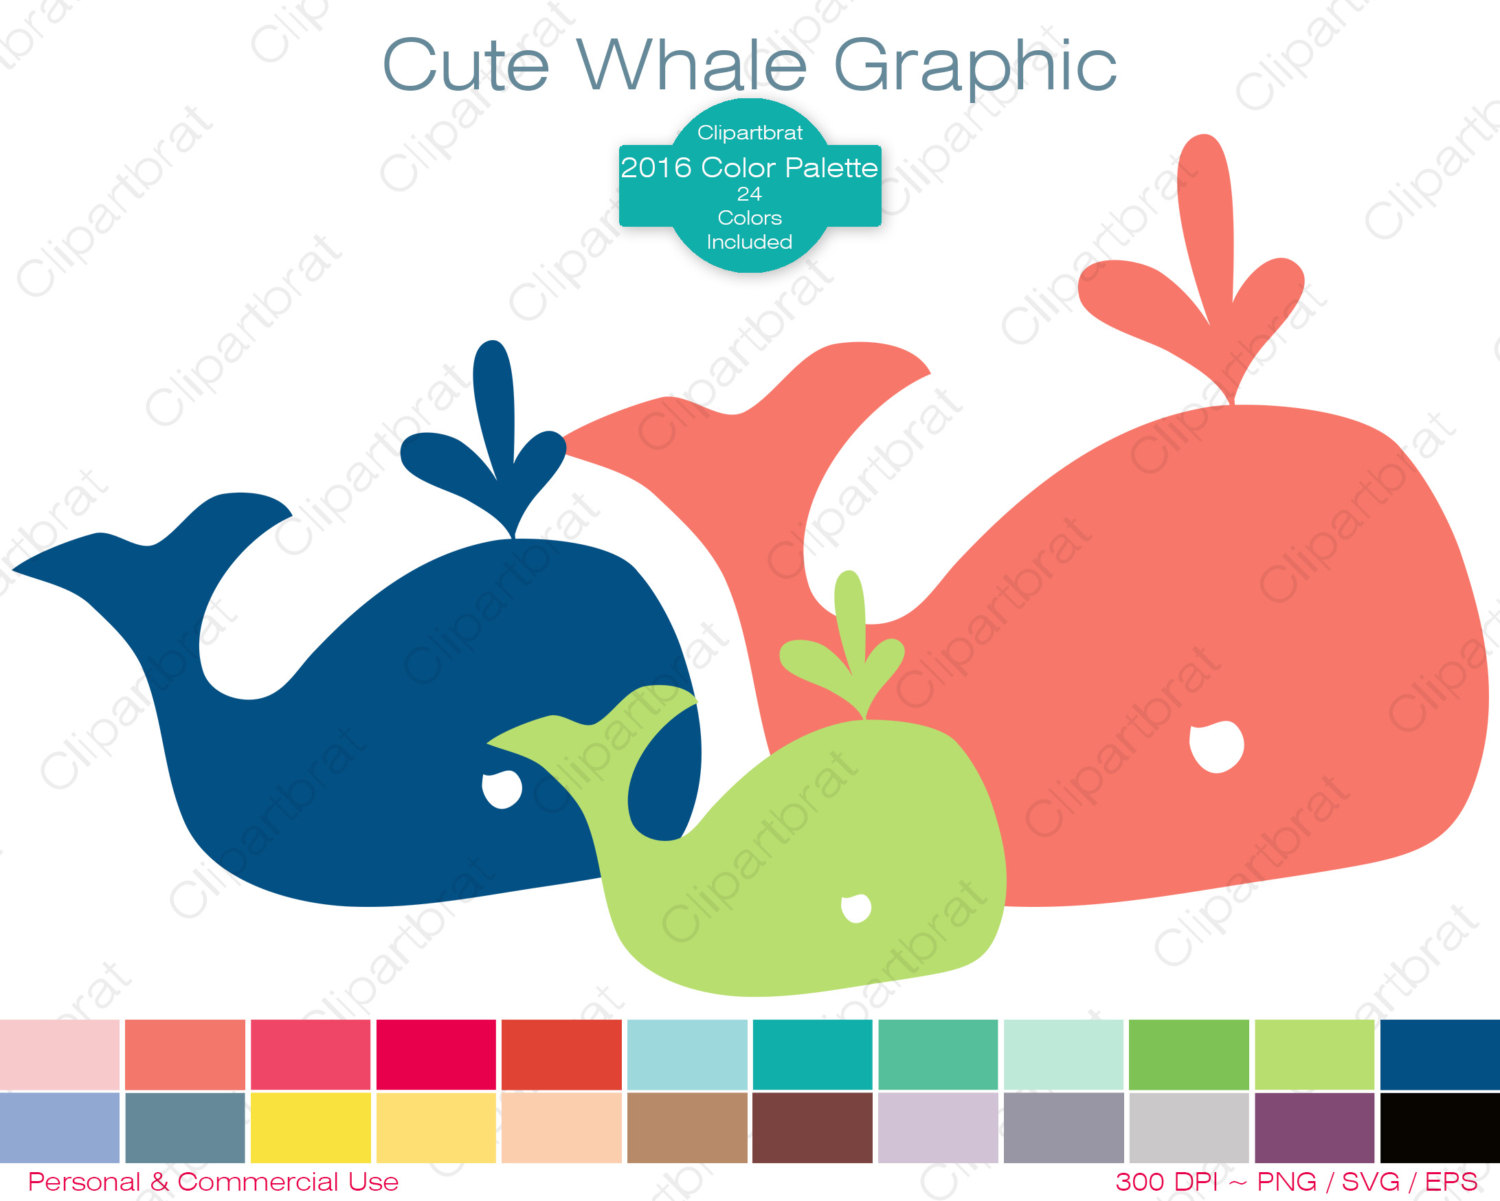 hight resolution of whale clipart commercial use clipart cute whale graphic 2016 color palette 24 colors whale images digital sticker vector whale png eps svg